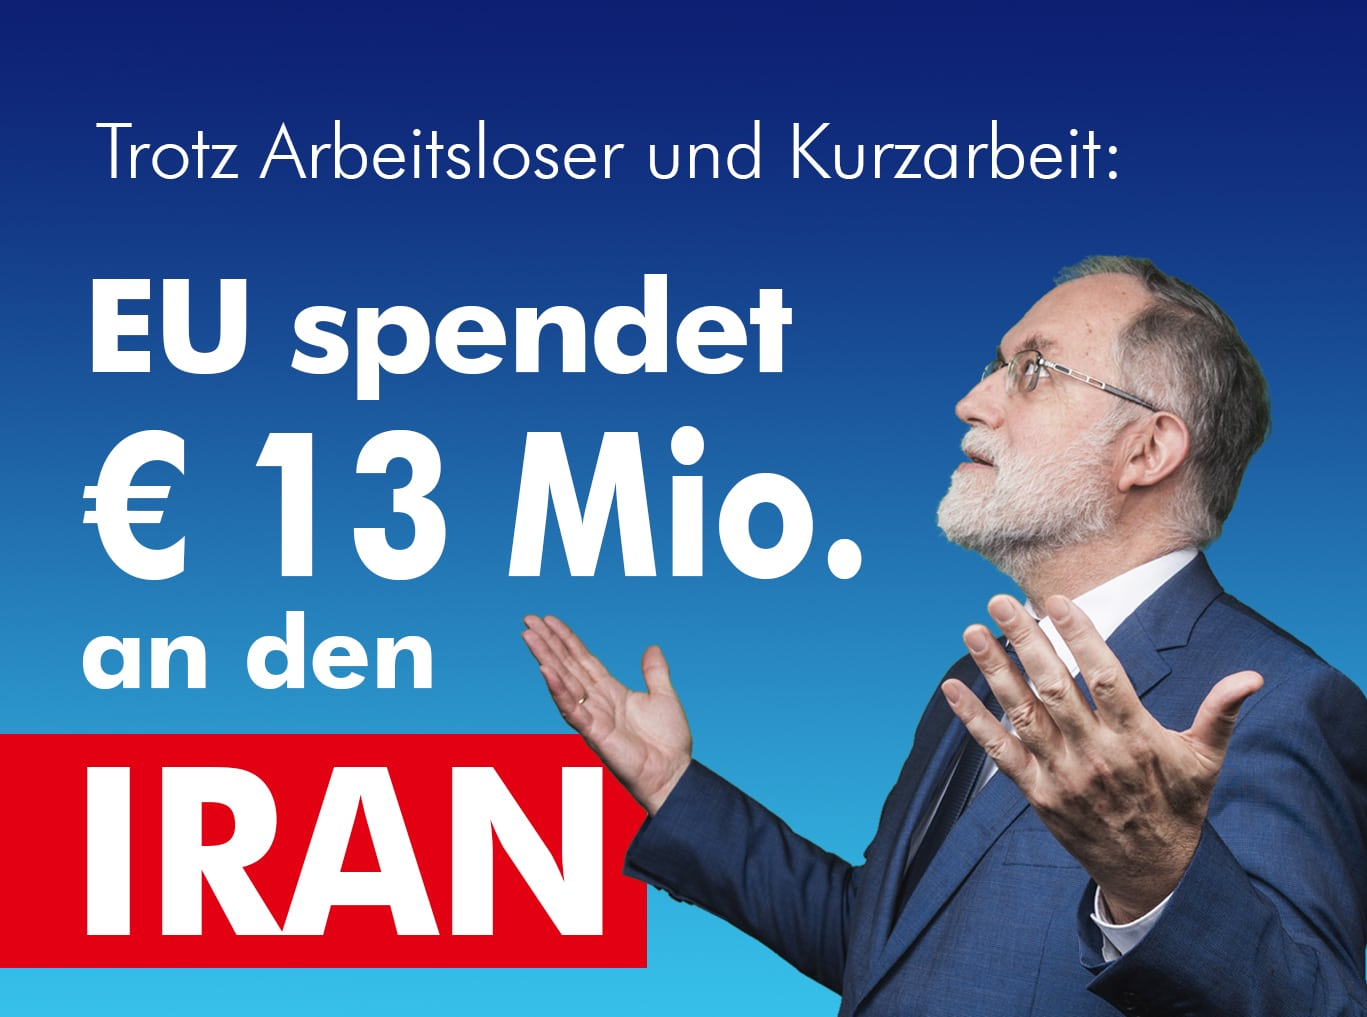 EU spendet an Iran